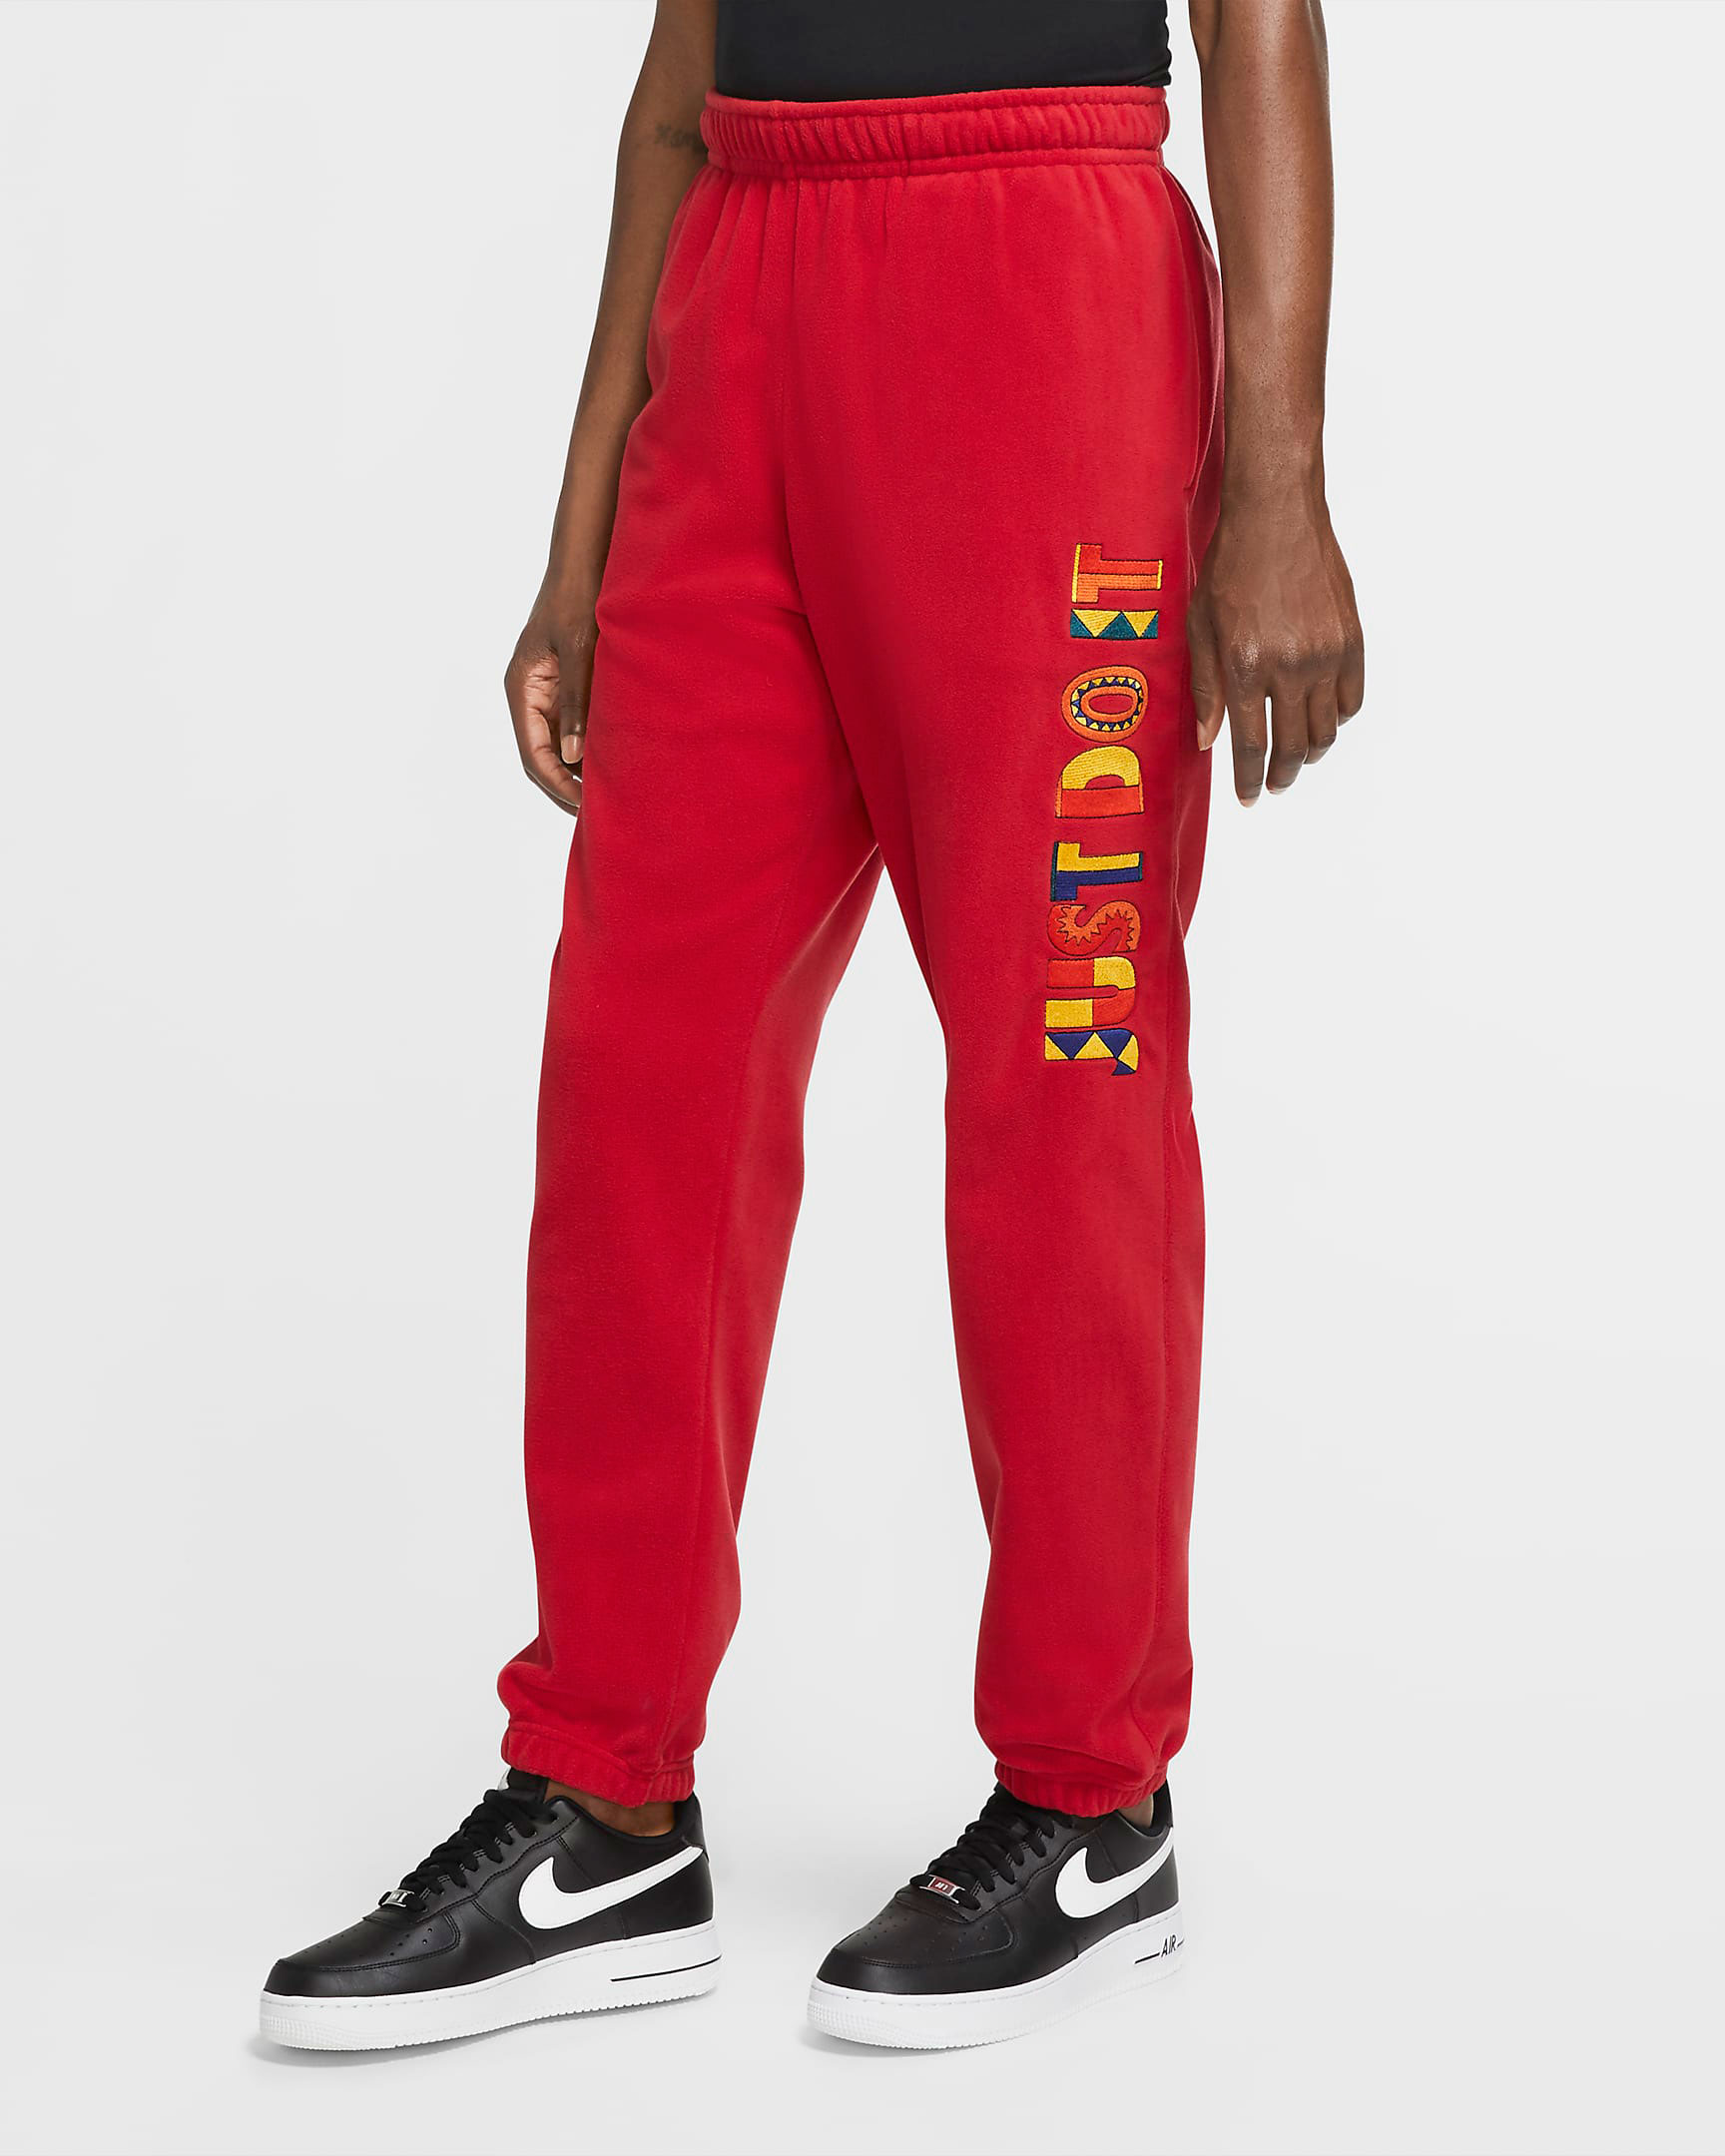 nike-urban-jungle-live-together-play-together-jogger-pants-red